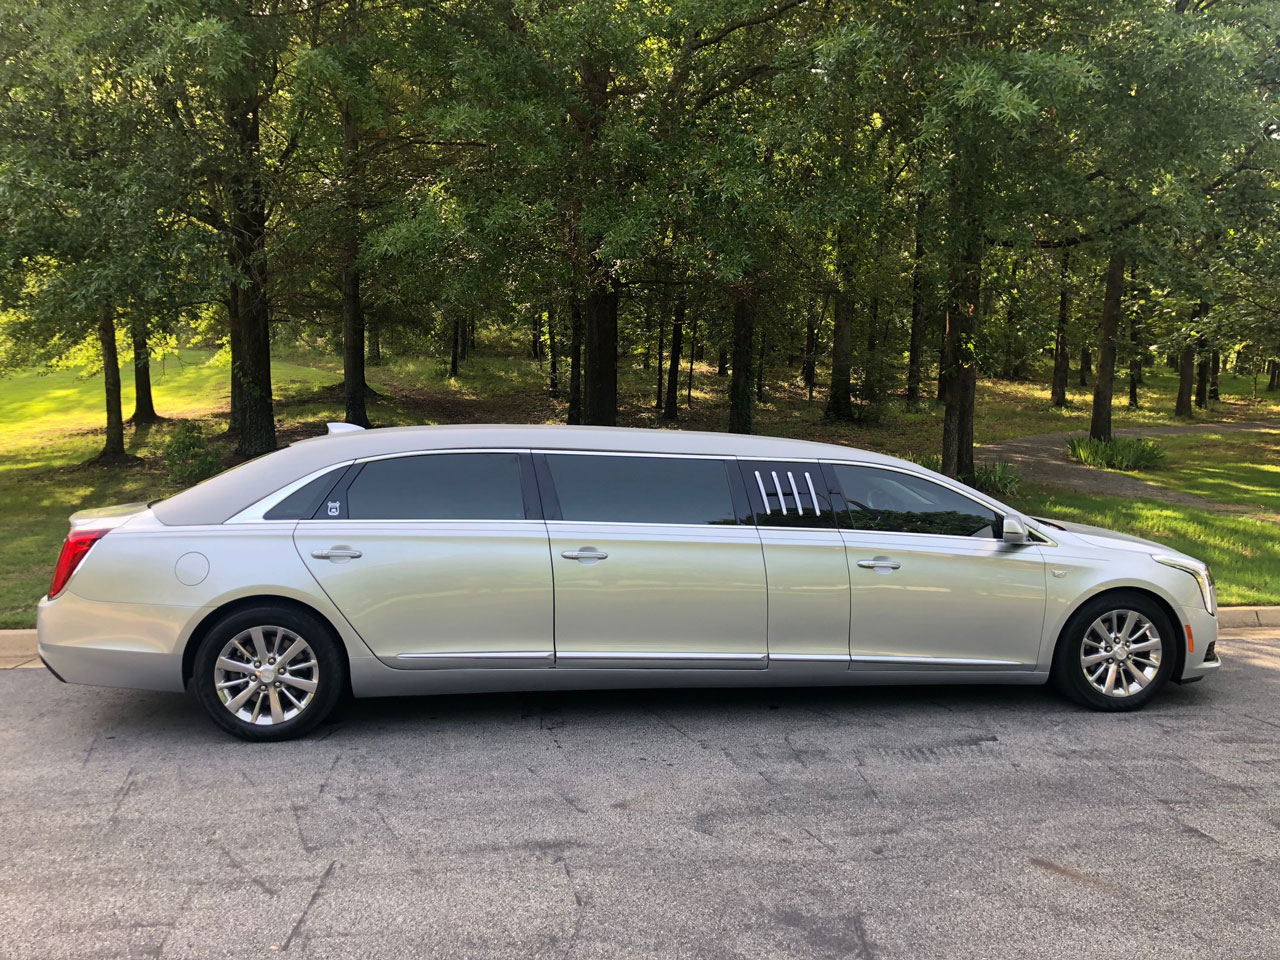 2019 Armbruster Stageway Cadillac 70 Stretch Limousine 14